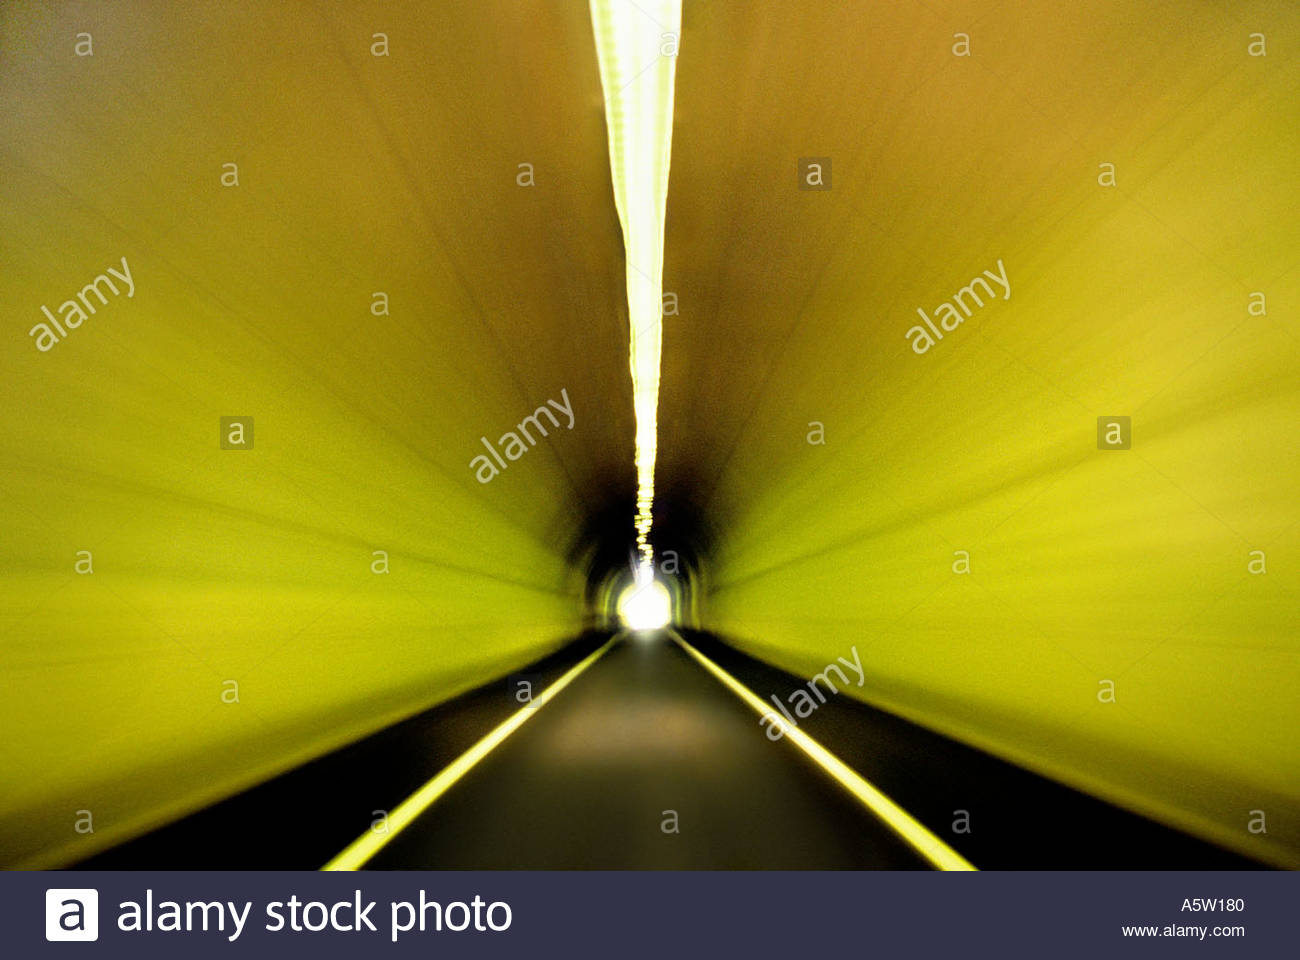 Driver's view of a single lane tunnel. Stock Photo